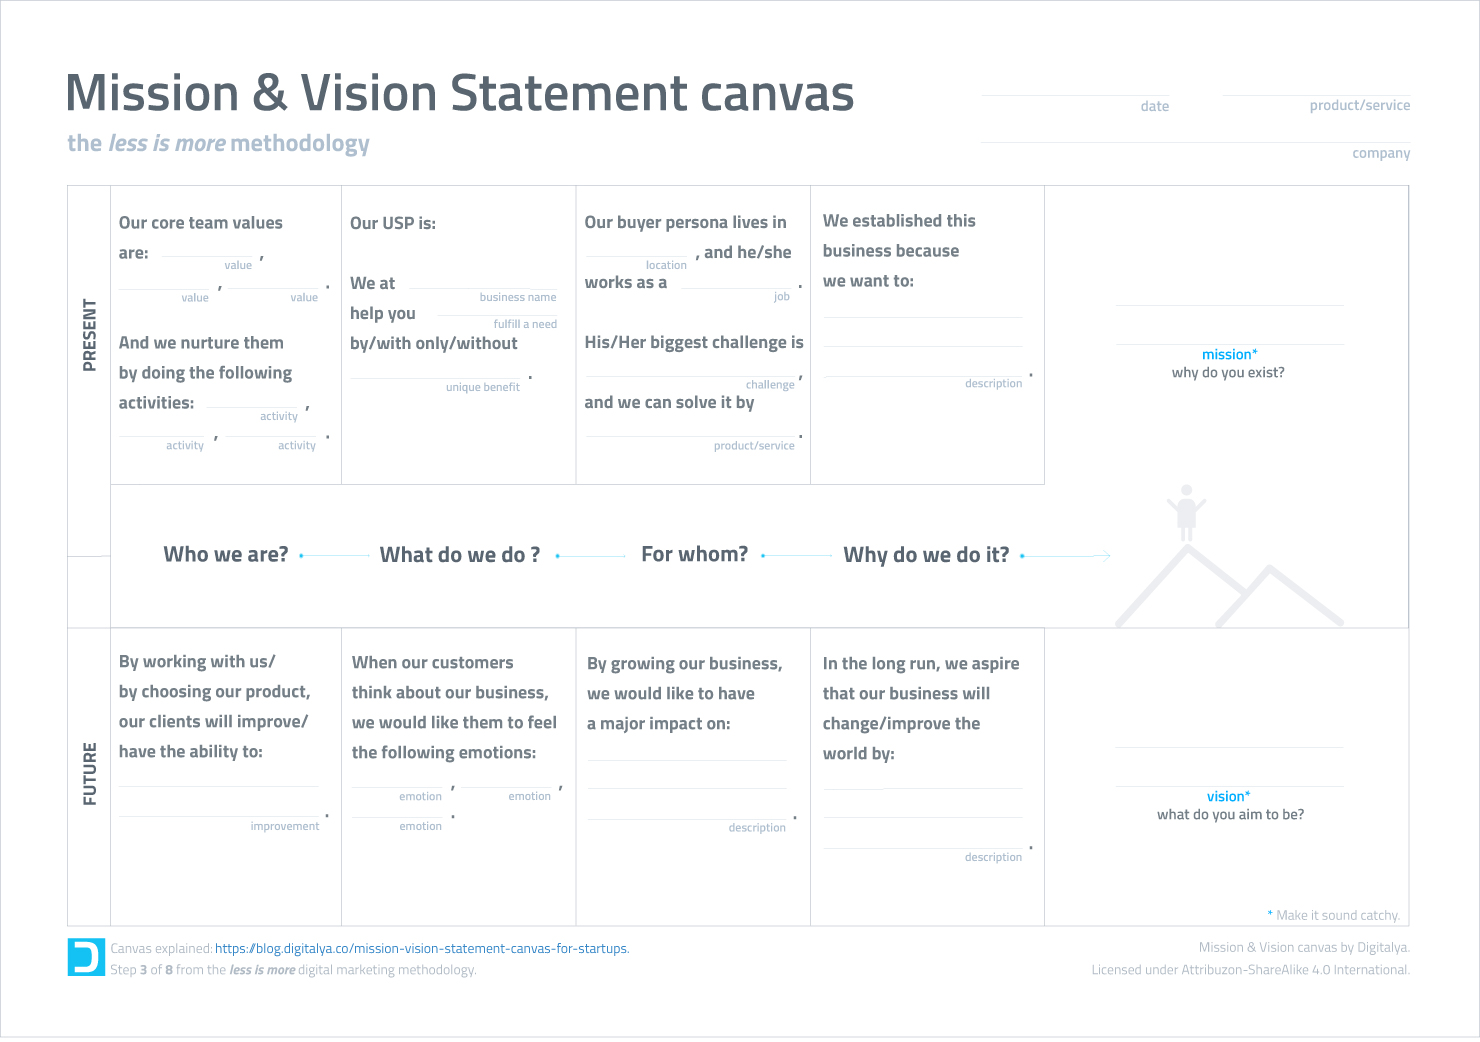 Mission_Vision_Canvas_for_startups-1